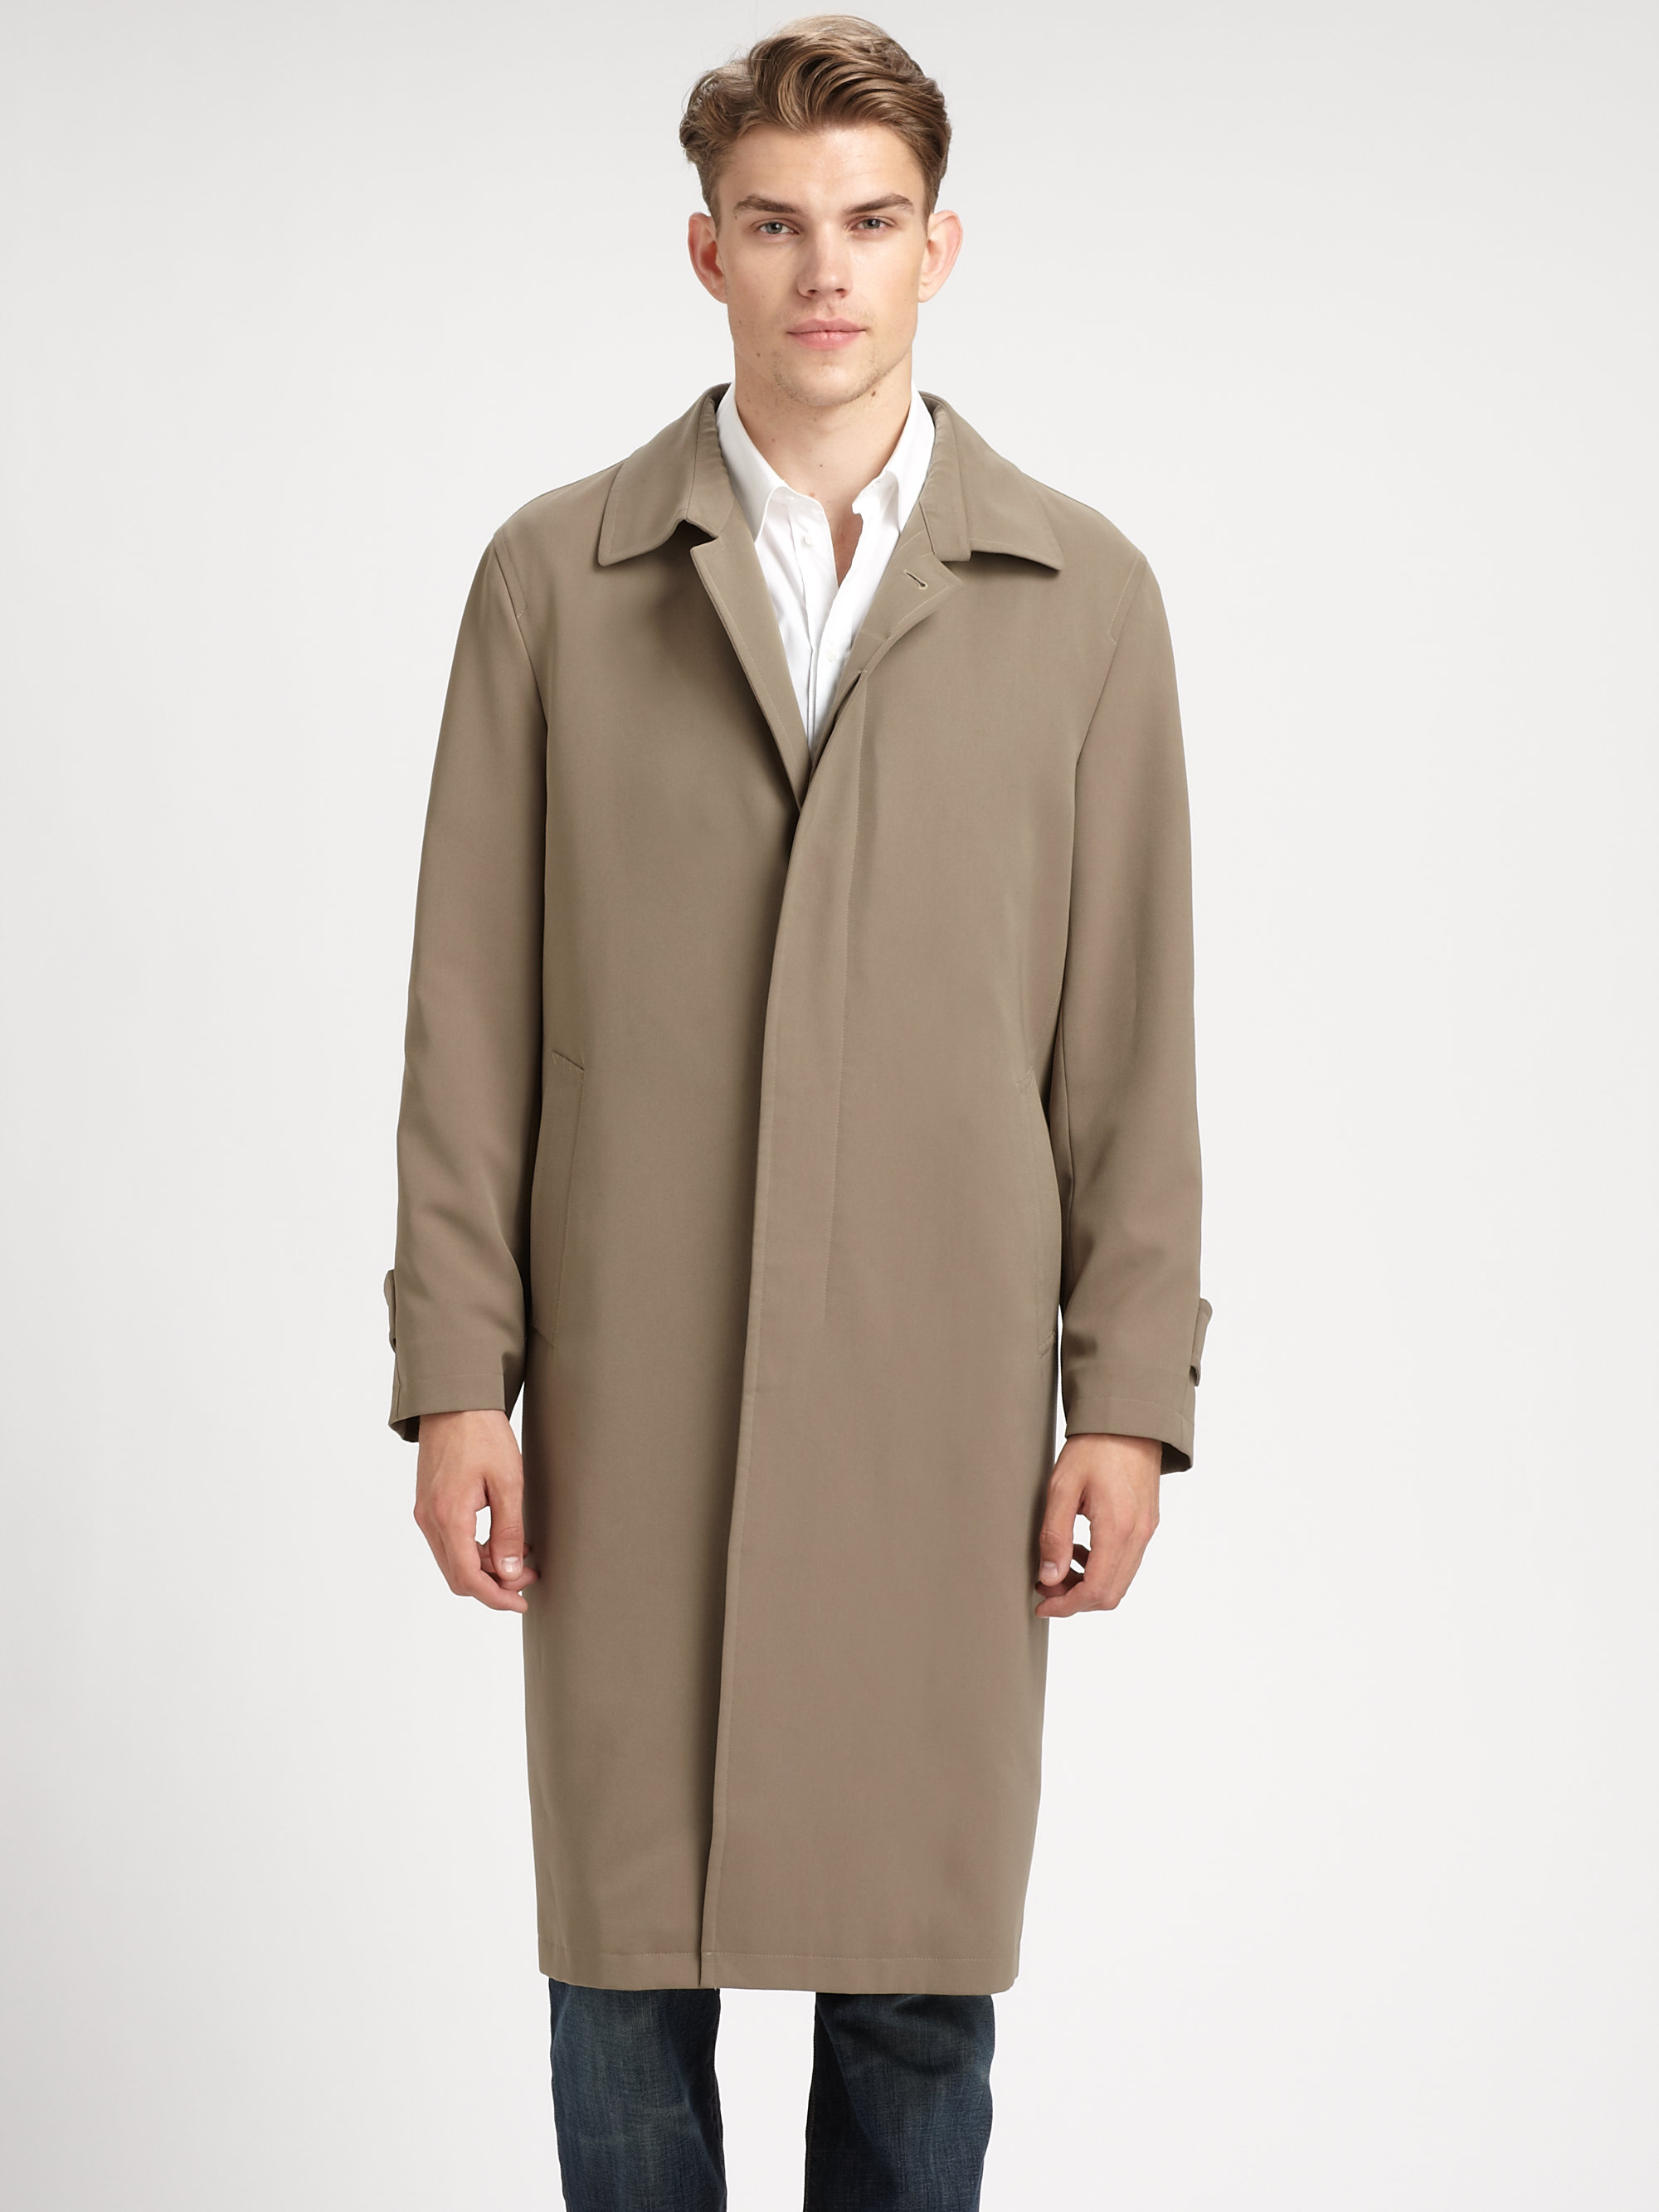 Looking for coats and jackets